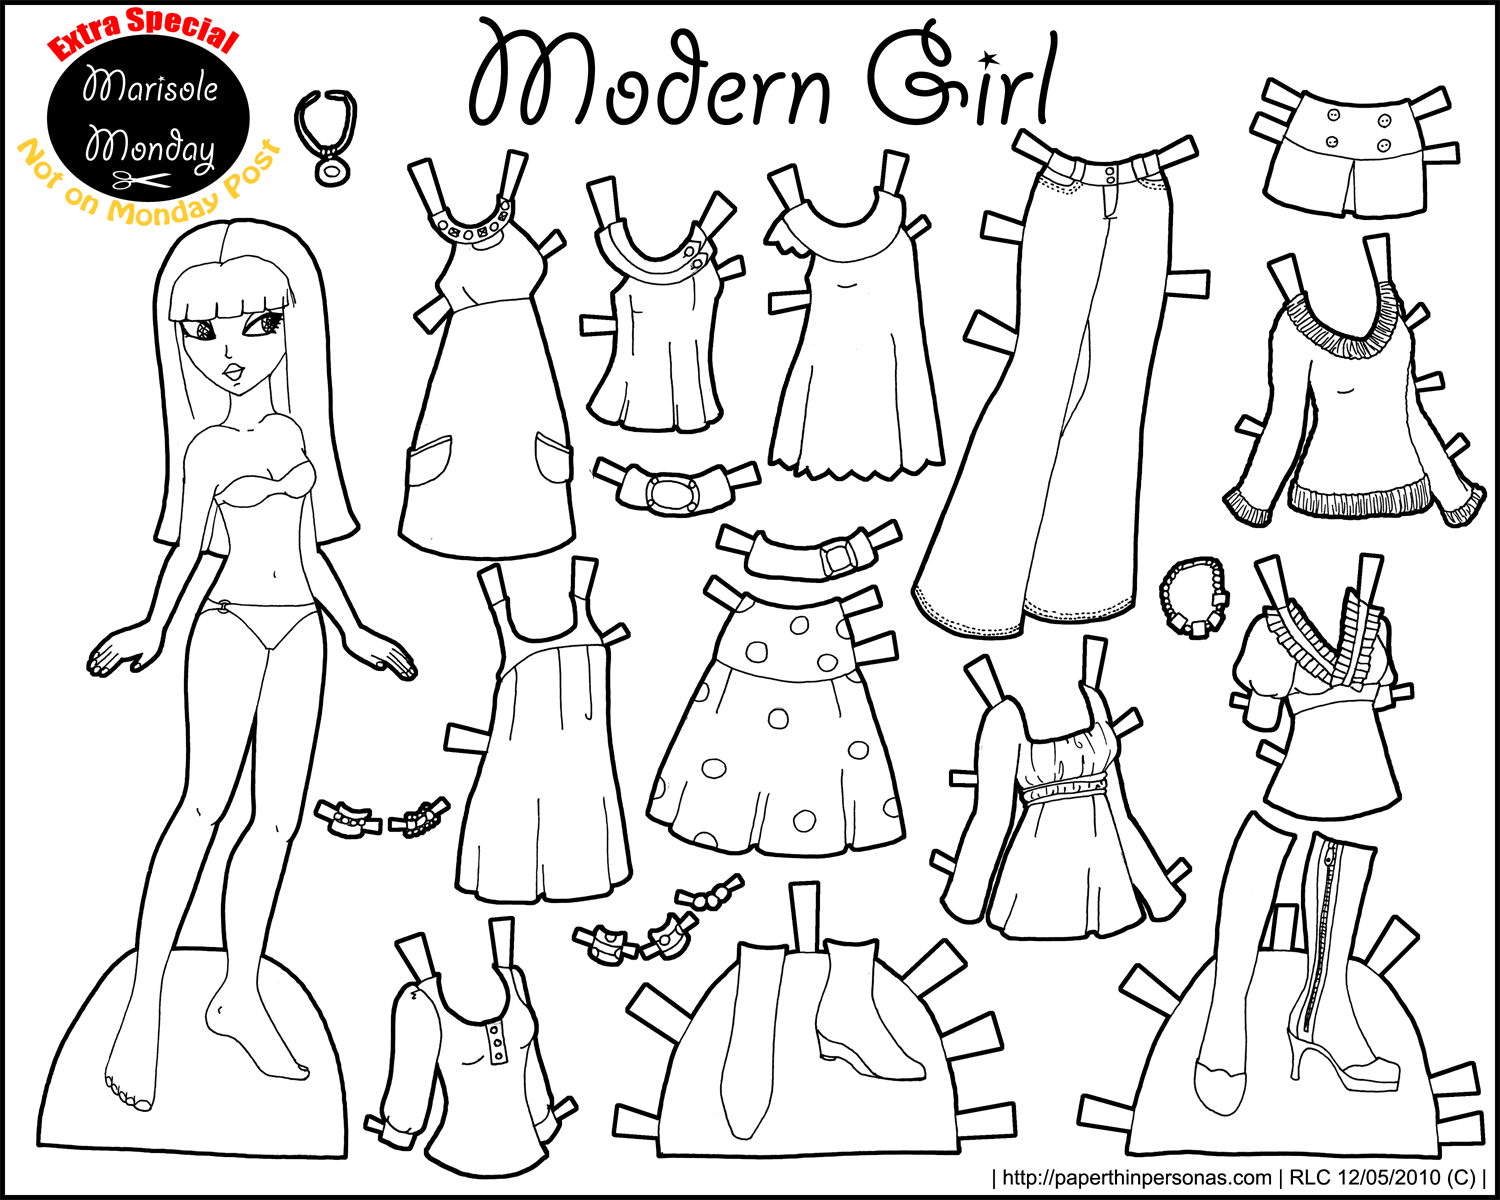 paper doll printable marisole black and white 1500 1200 file under paper thin. Black Bedroom Furniture Sets. Home Design Ideas